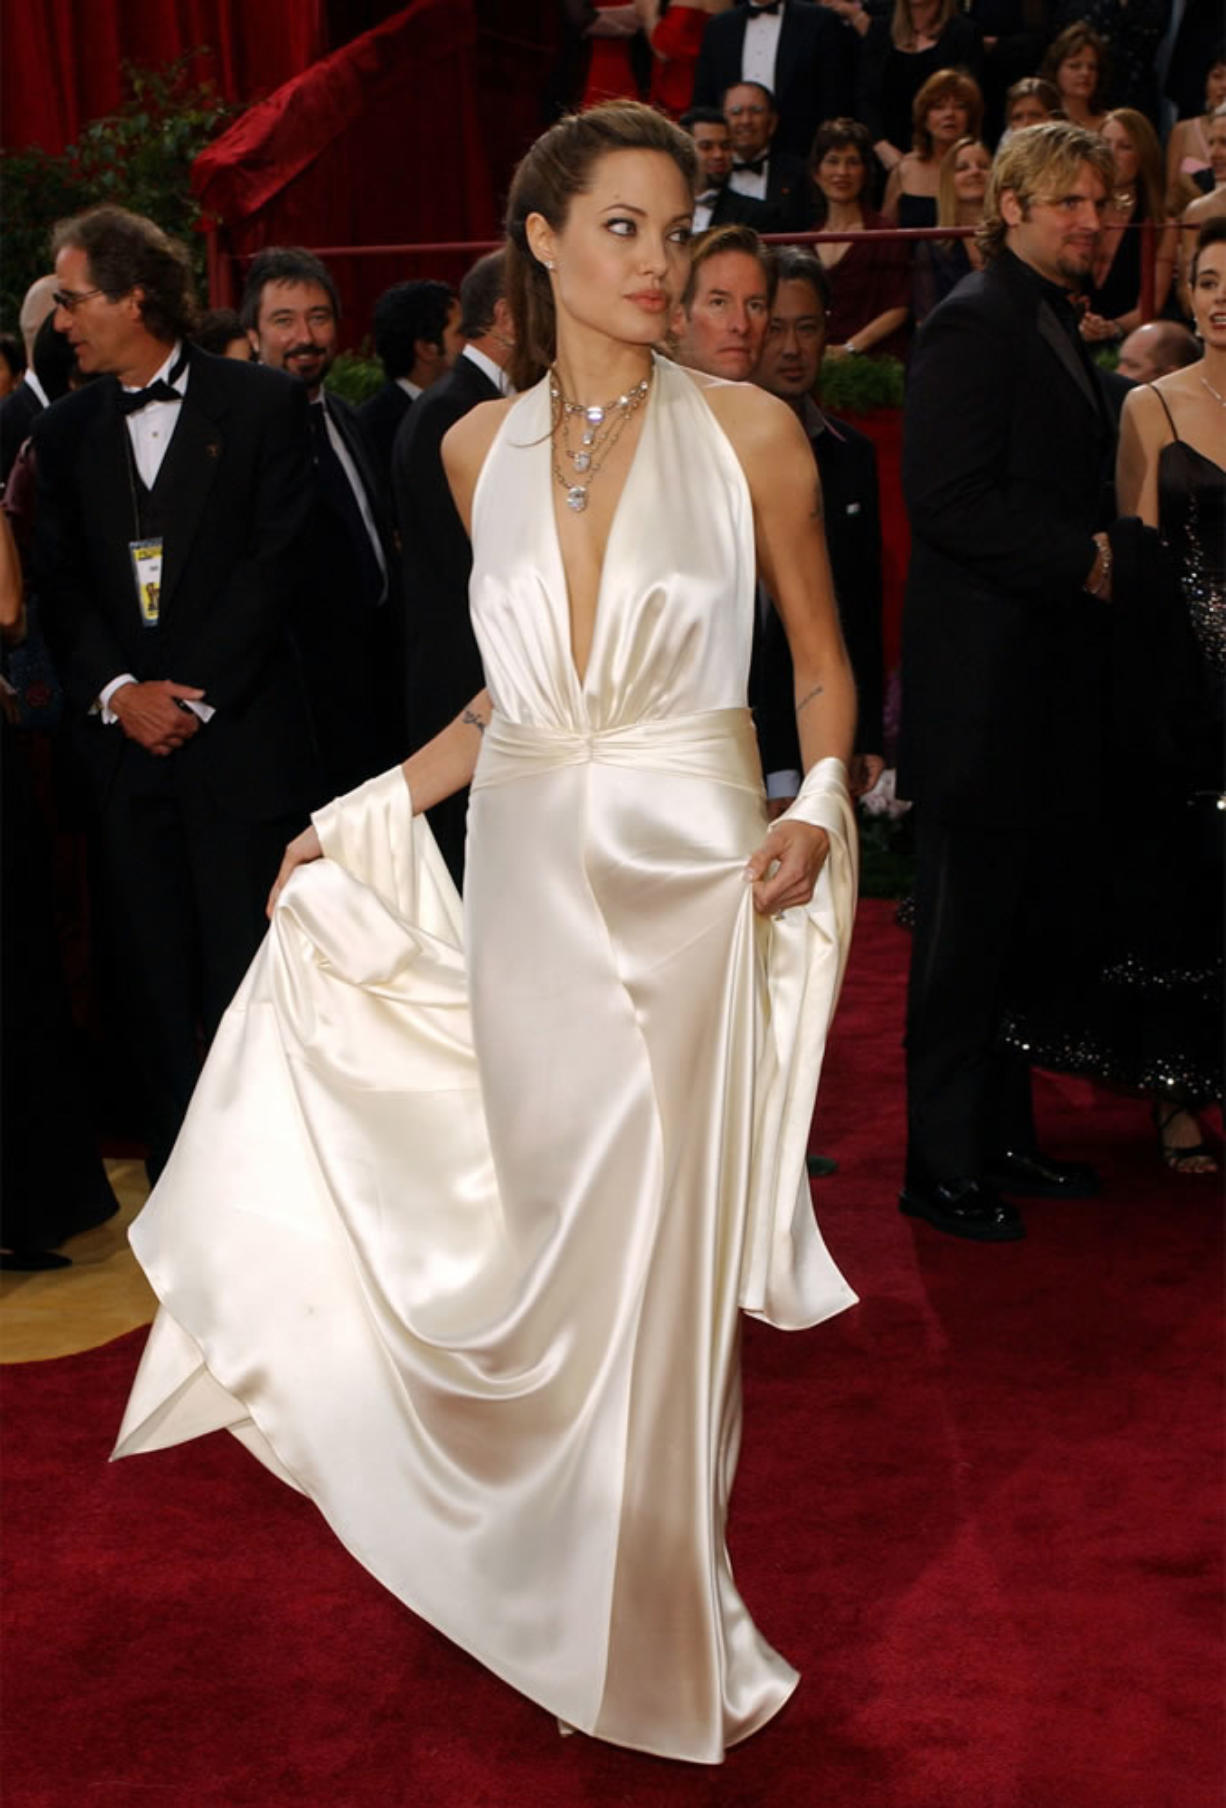 From Florals To Stripes: Angelina Jolie Redefines Every Design To Perfection